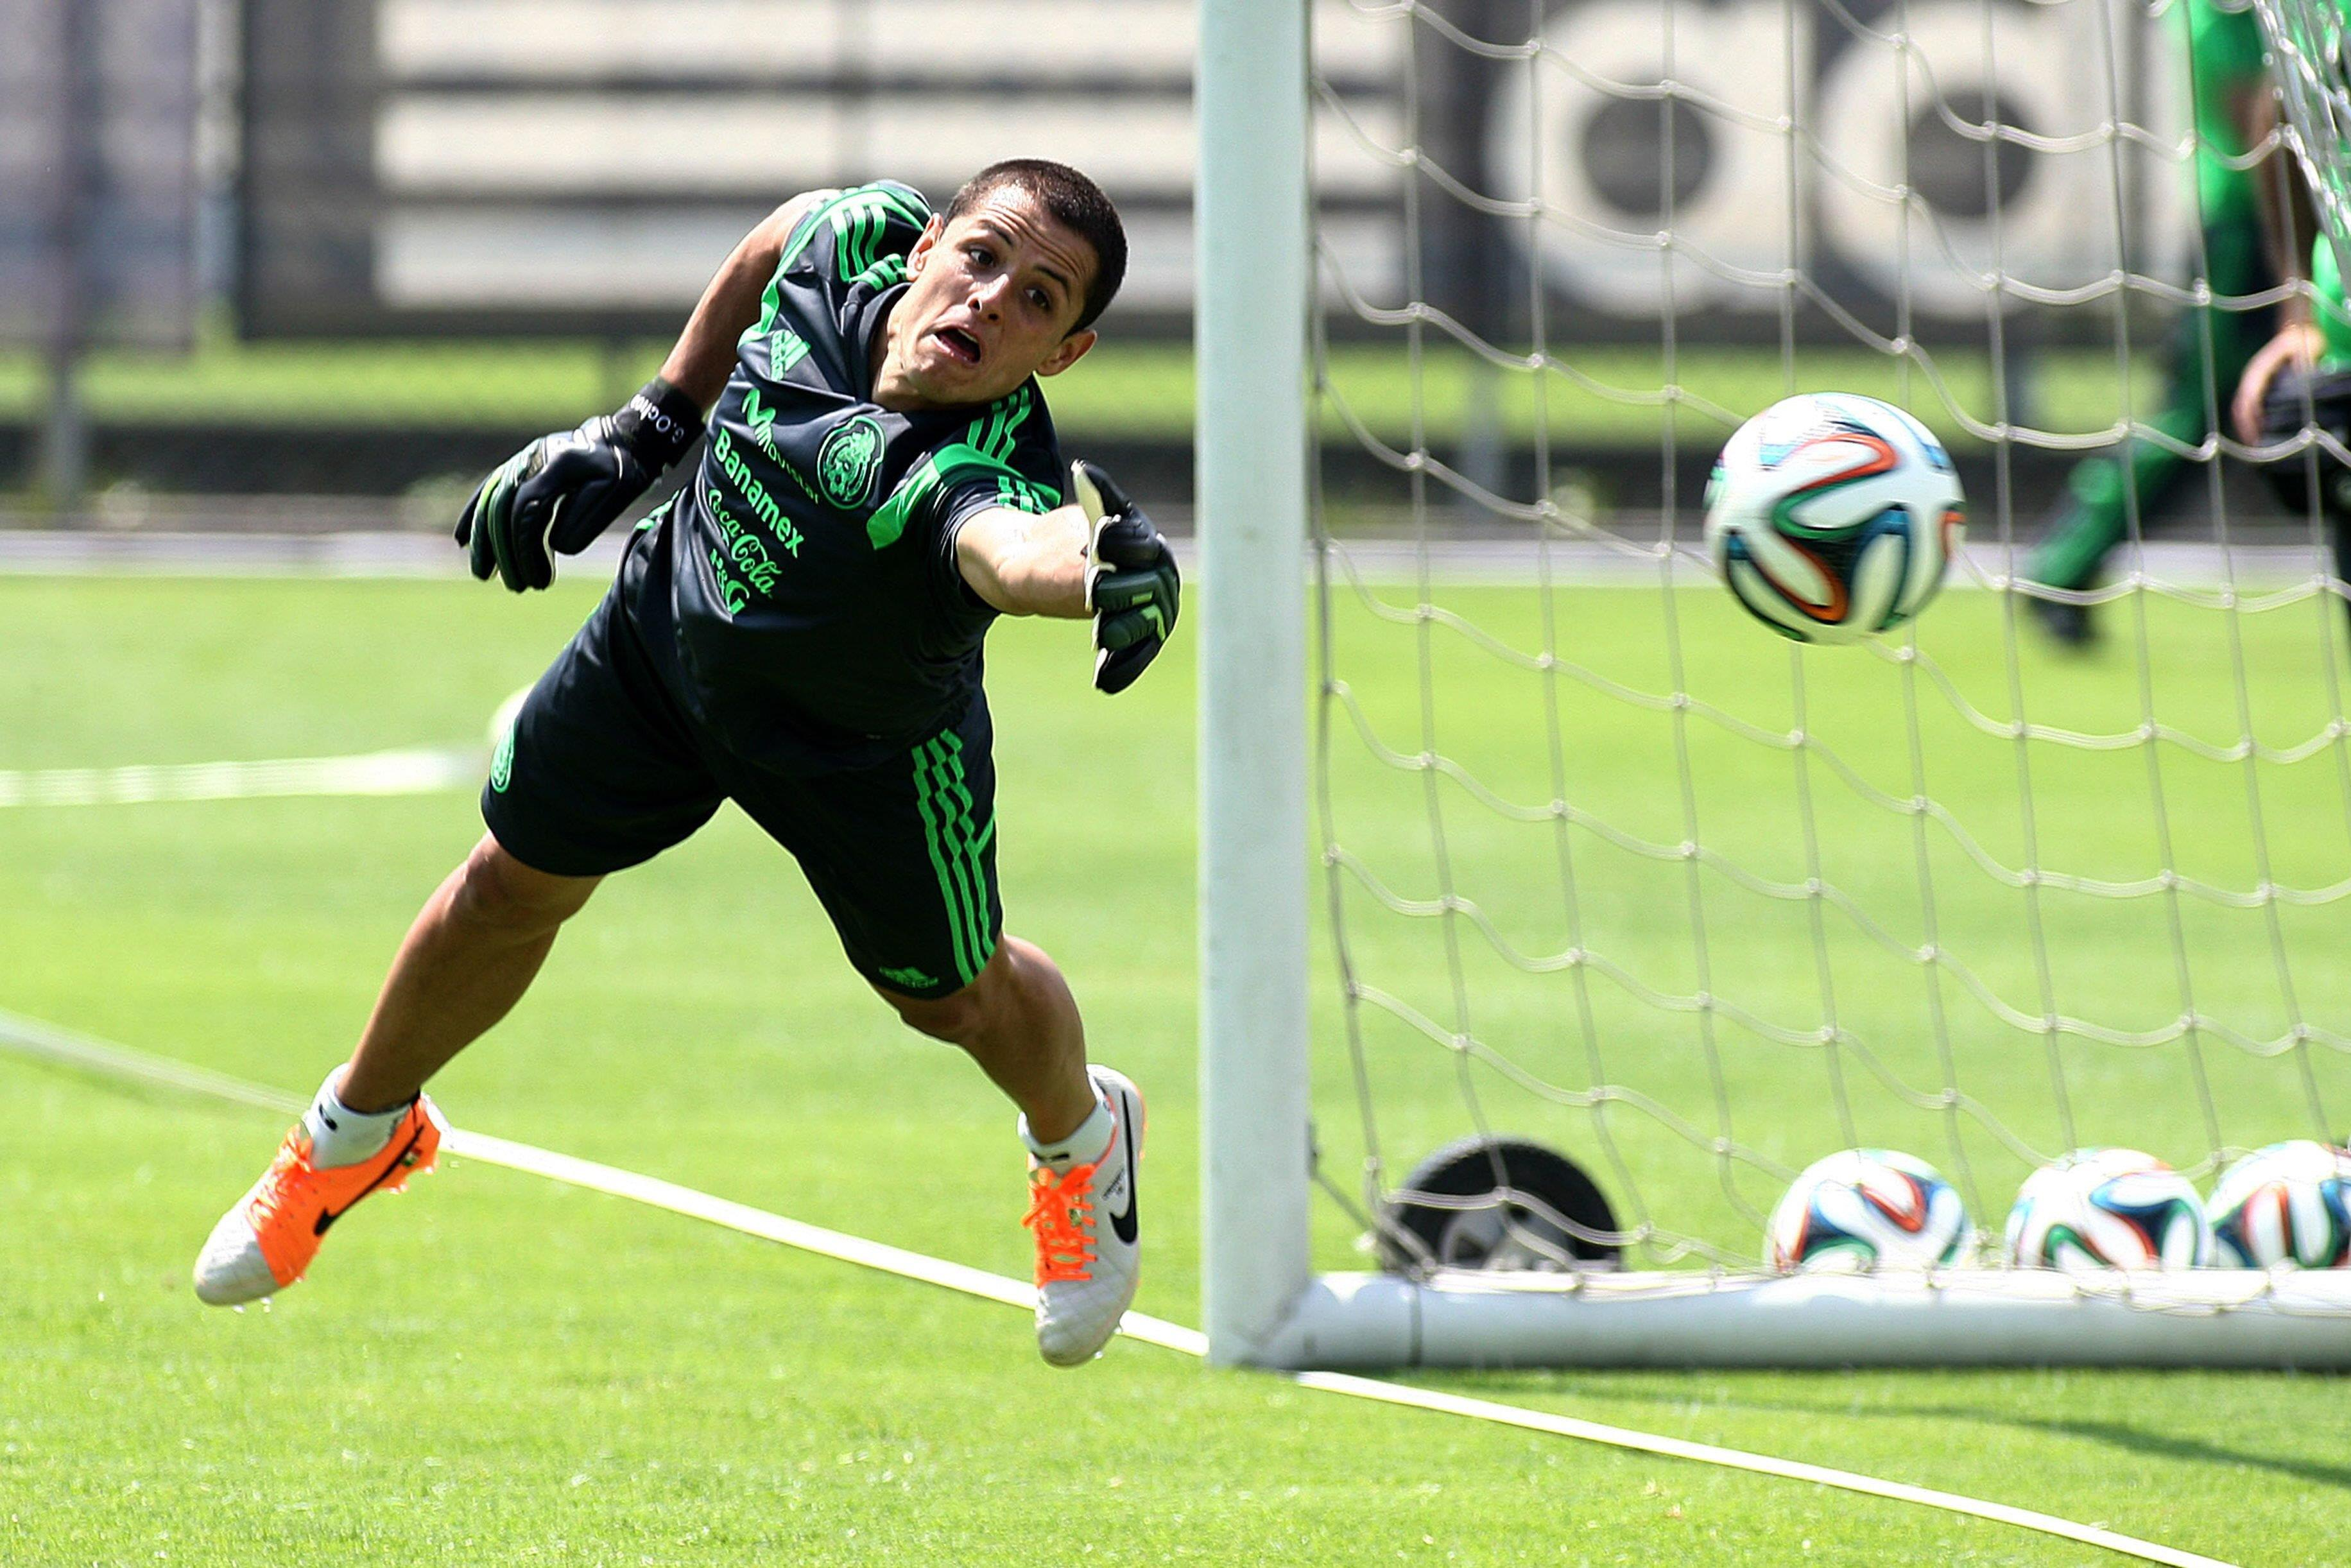 Image: TRAINING SESSION OF MEXICO